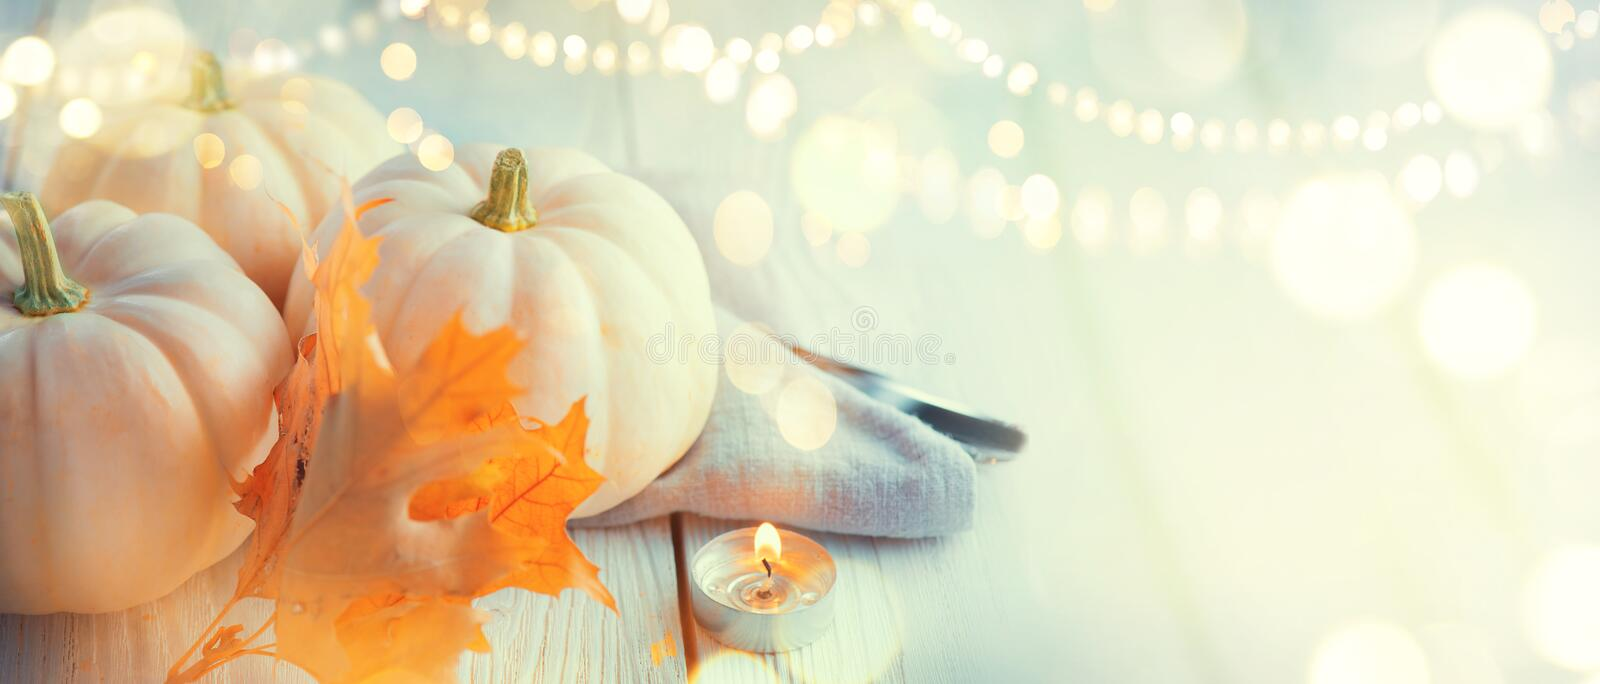 Thanksgiving background. Wooden table, decorated with pumpkins, autumn leaves and candles royalty free stock photography